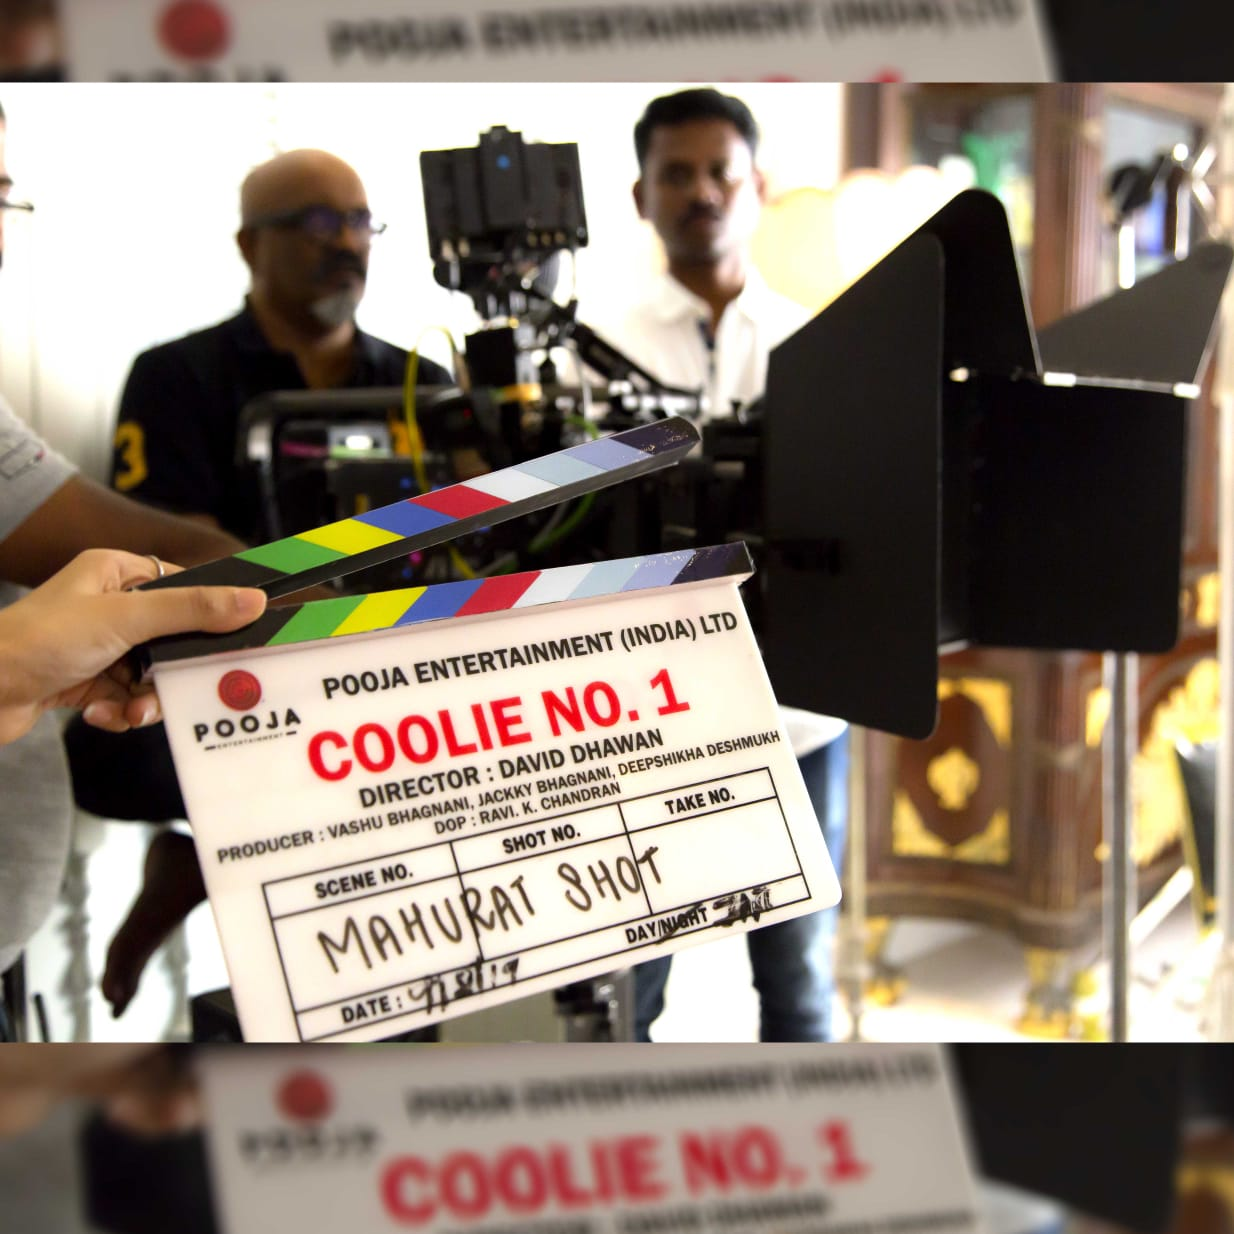 Varun Dhawan and Sara Ali Khan starrer Coolie No 1 remake goes on floors